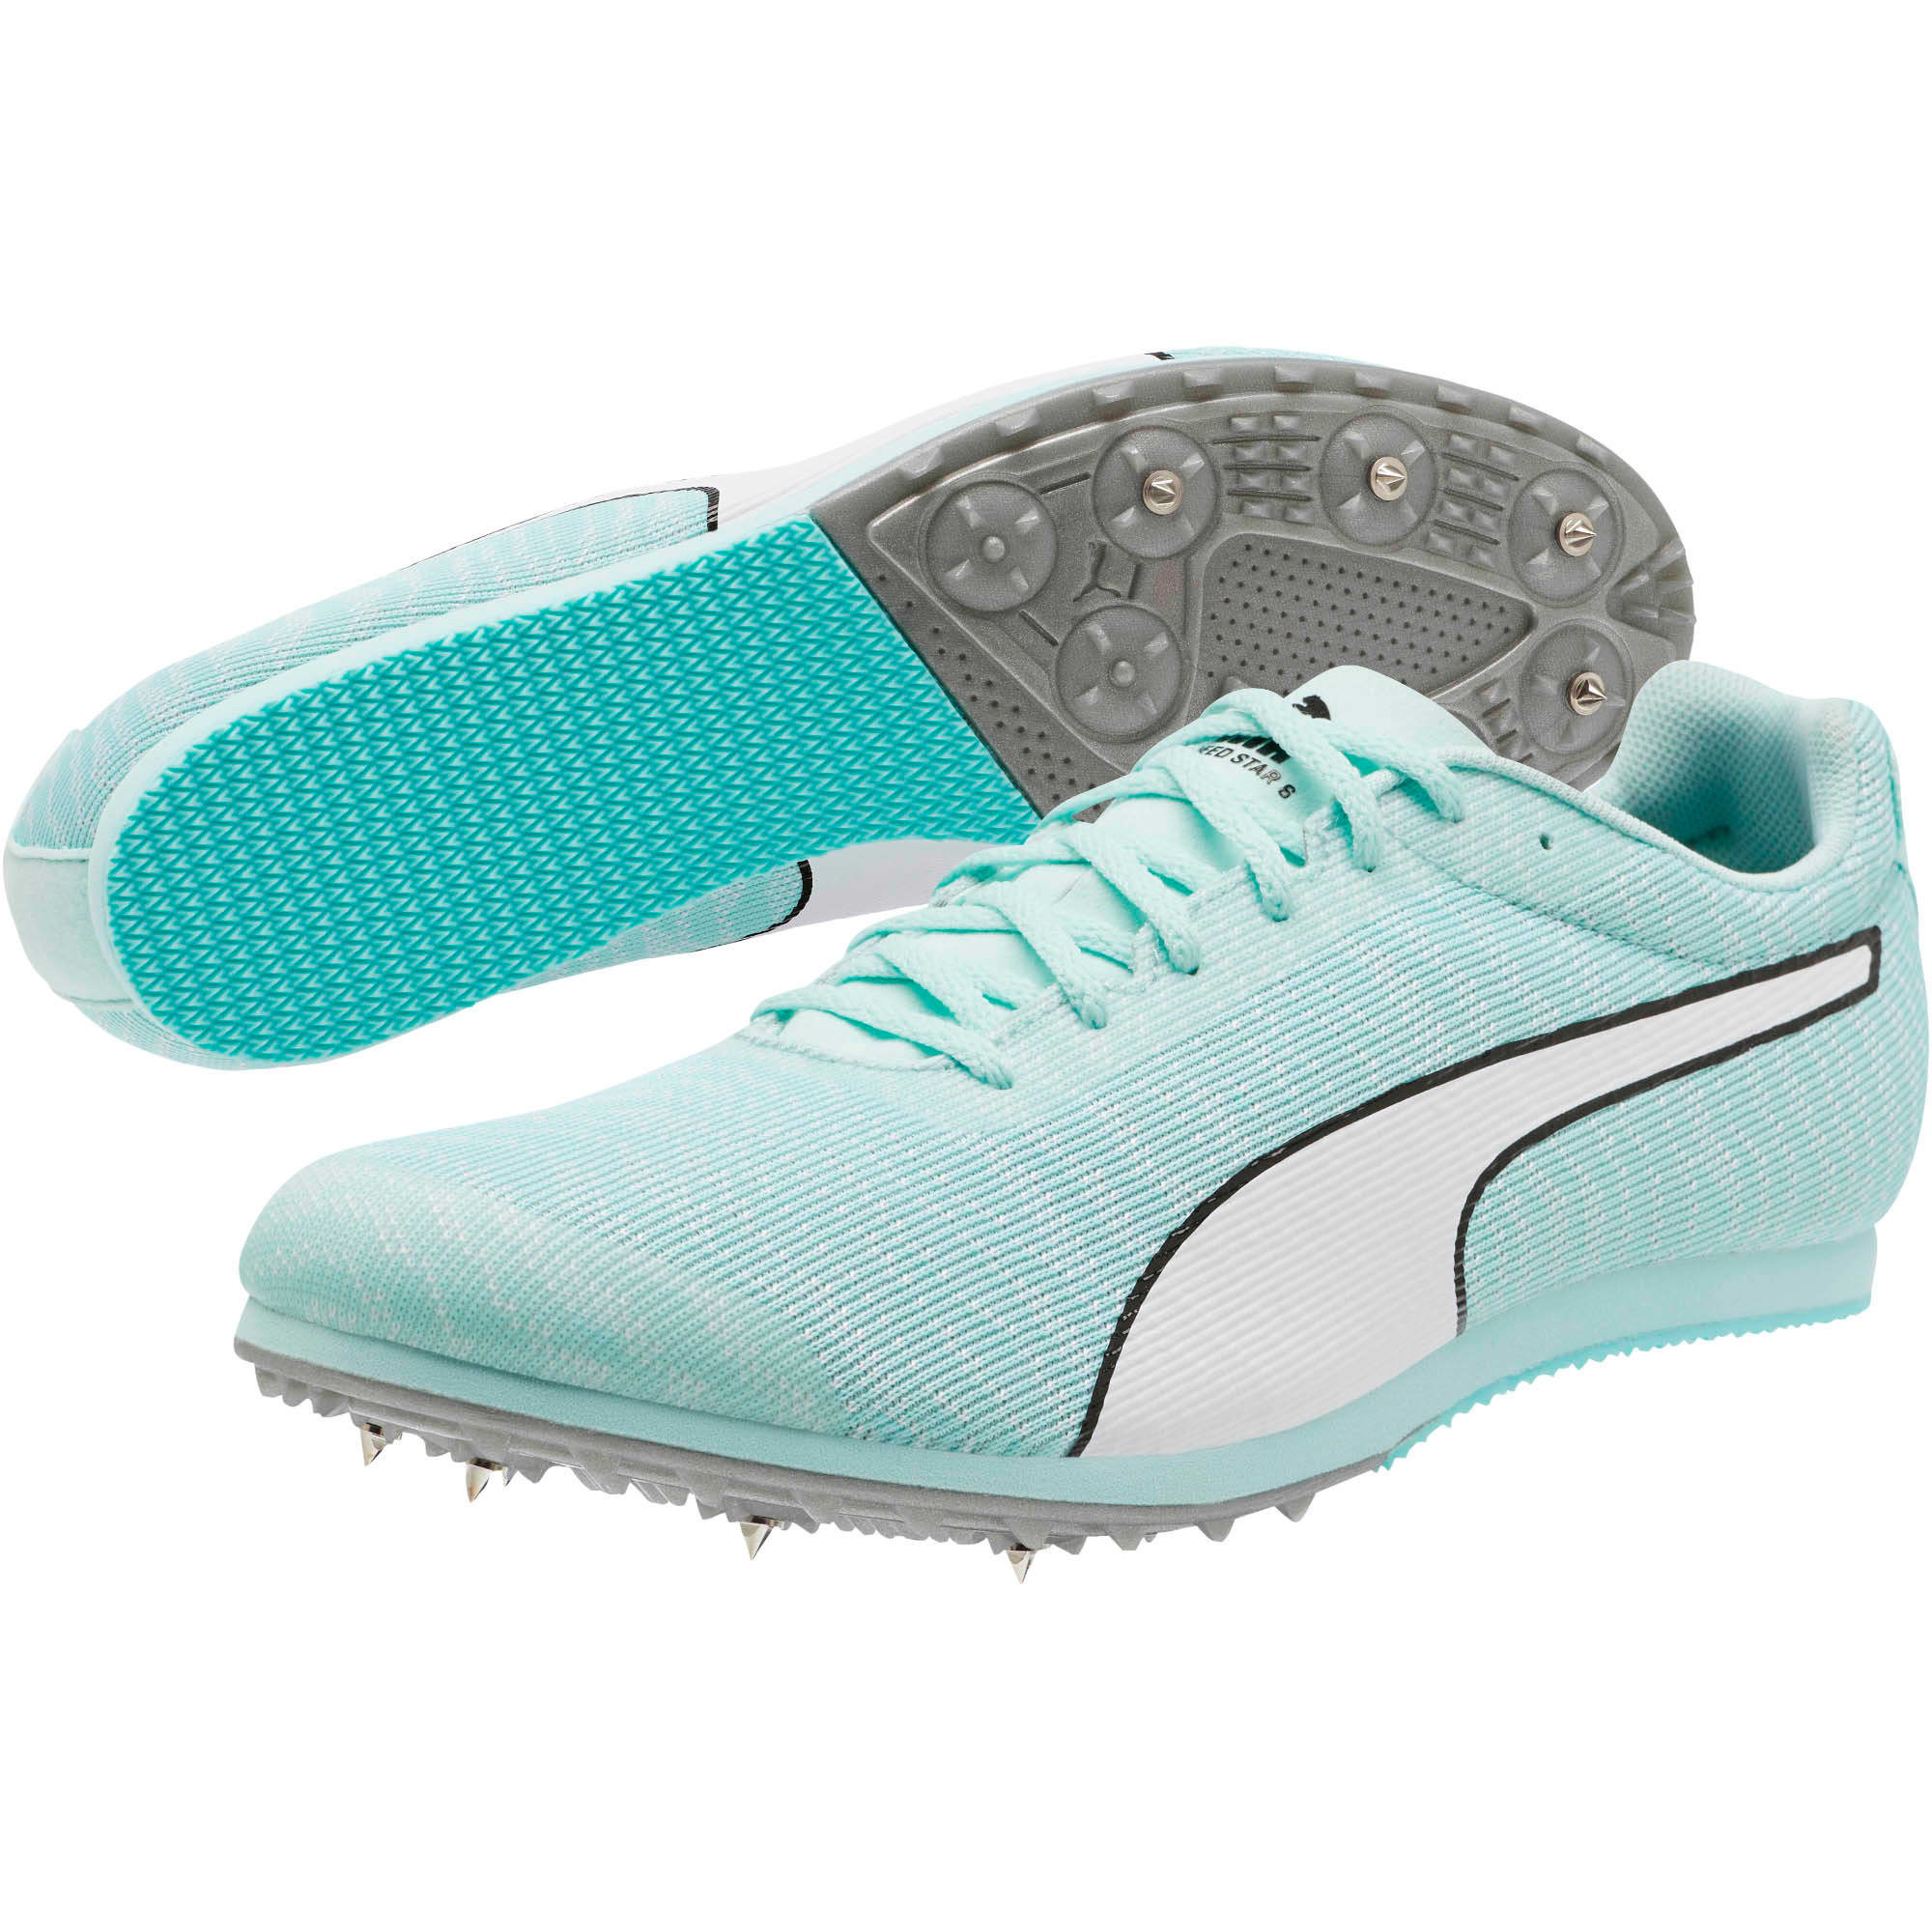 Thumbnail 2 of evoSPEED Star 6 Men's Track Spikes, Fair Aqua-Puma White, medium